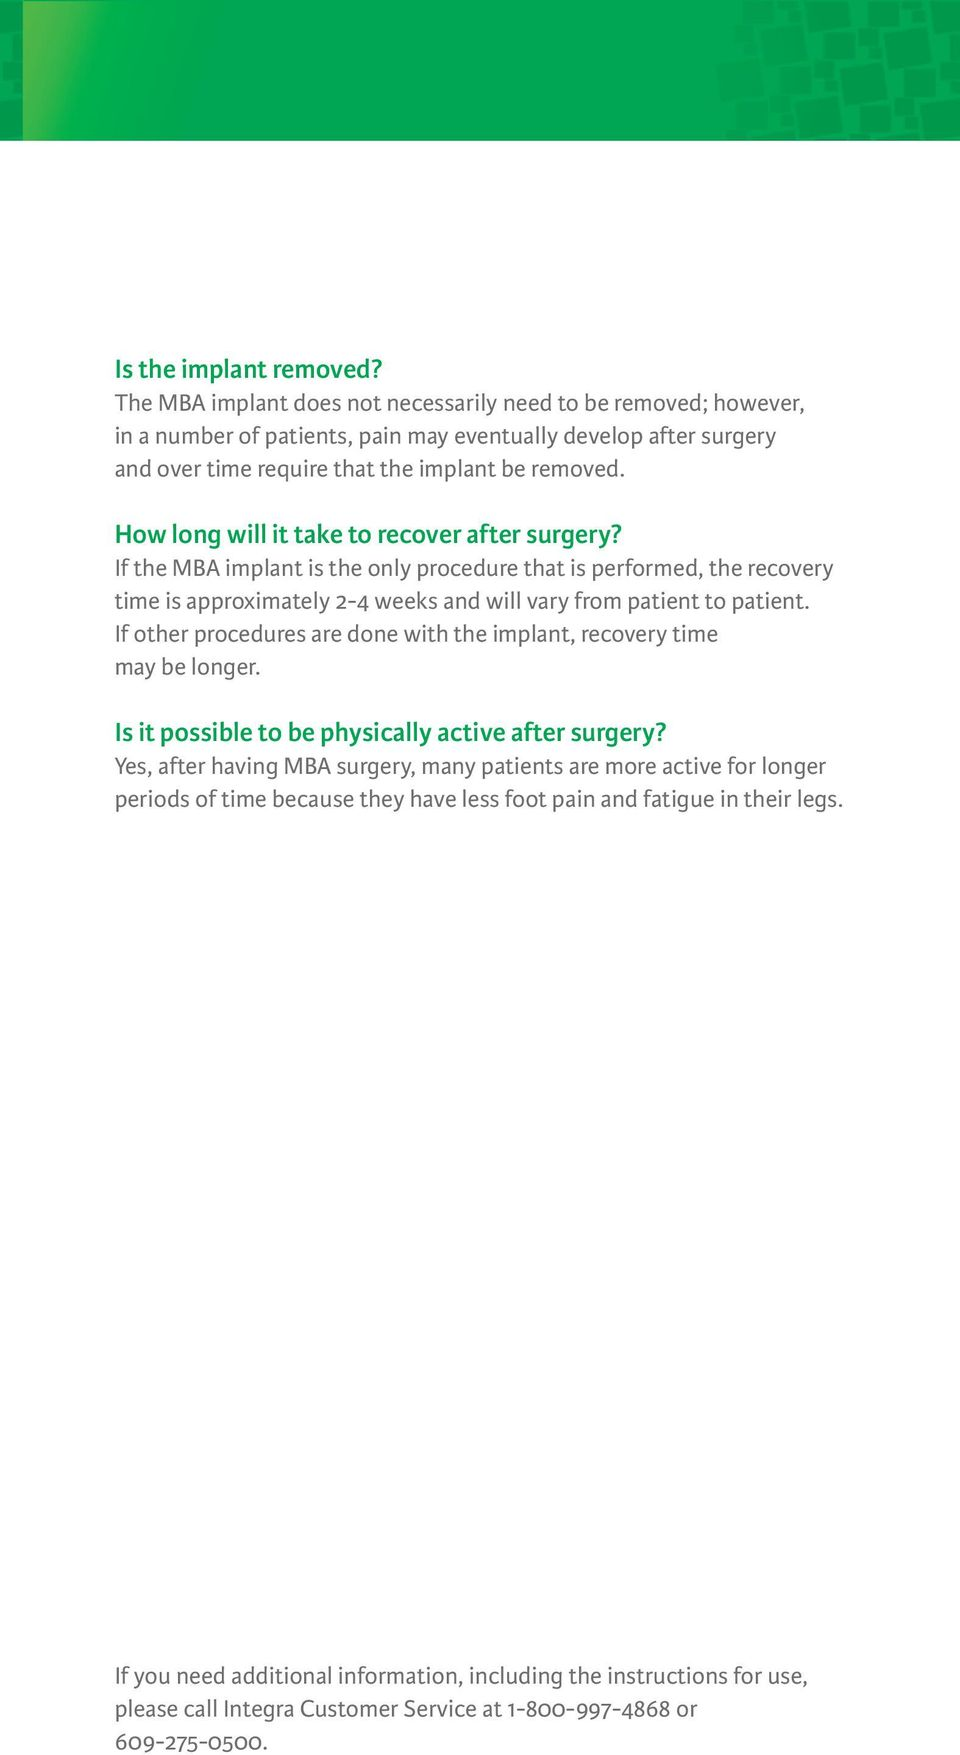 How long will it take to recover after surgery? If the MBA implant is the only procedure that is performed, the recovery time is approximately 2-4 weeks and will vary from patient to patient.